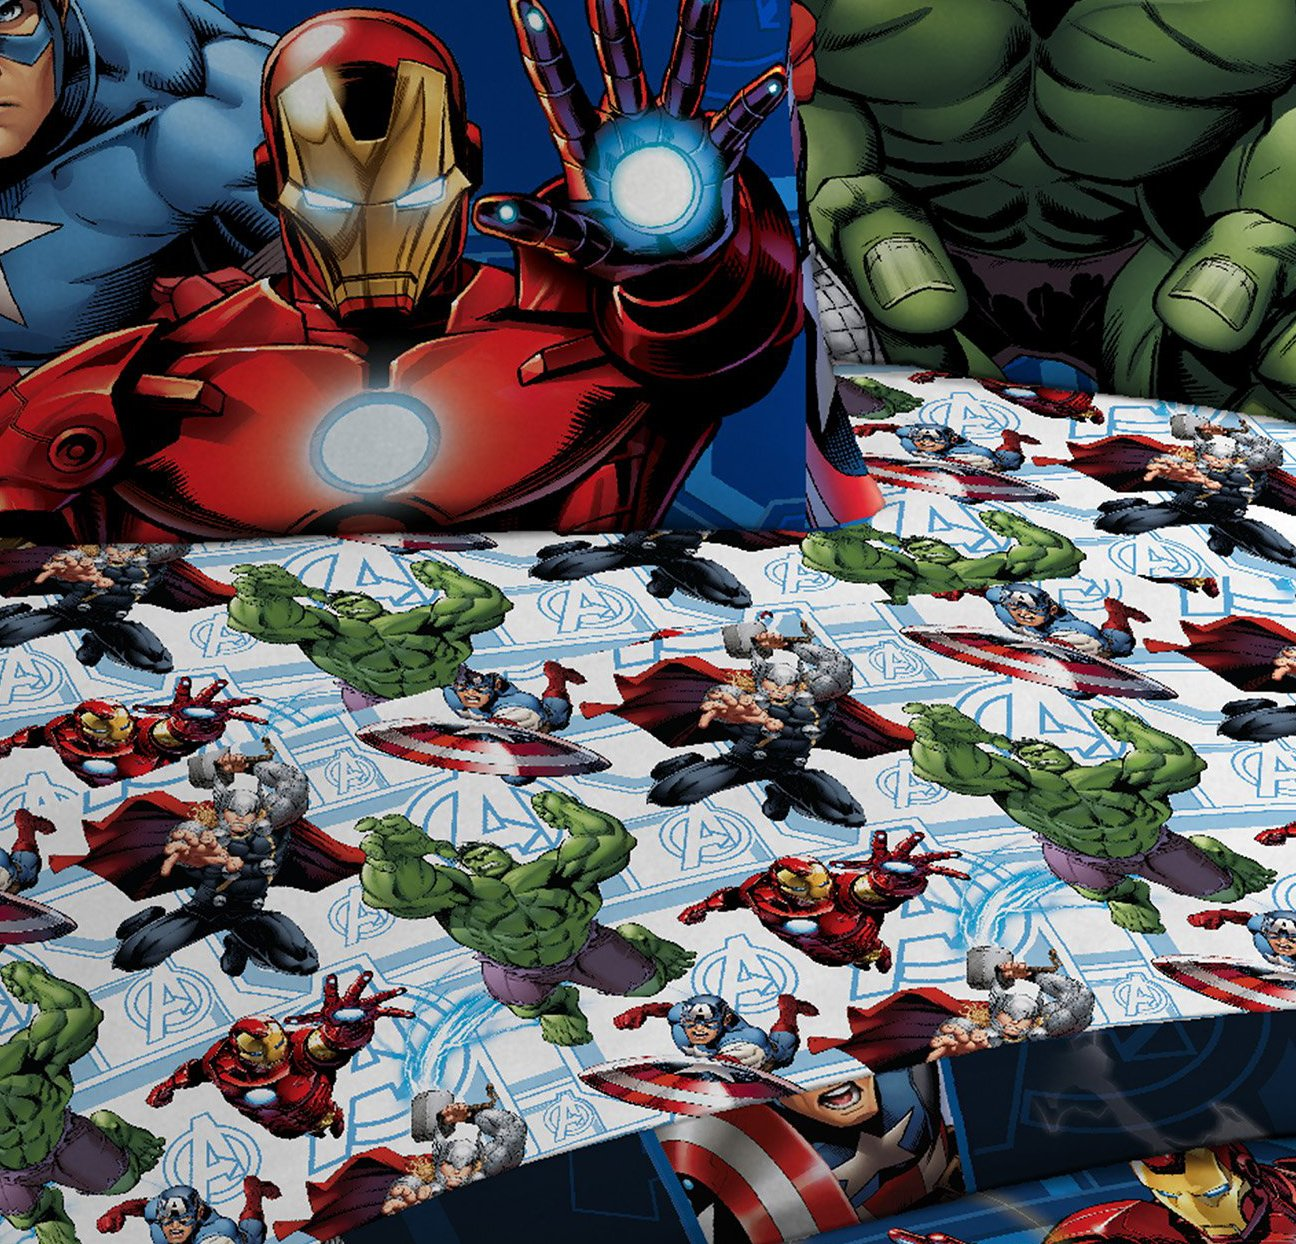 Marvel Avengers Heroic Age Blue/White 3 Piece Twin Sheet Set with Captain America, Thor, Ironman & Hulk by Marvel (Image #6)